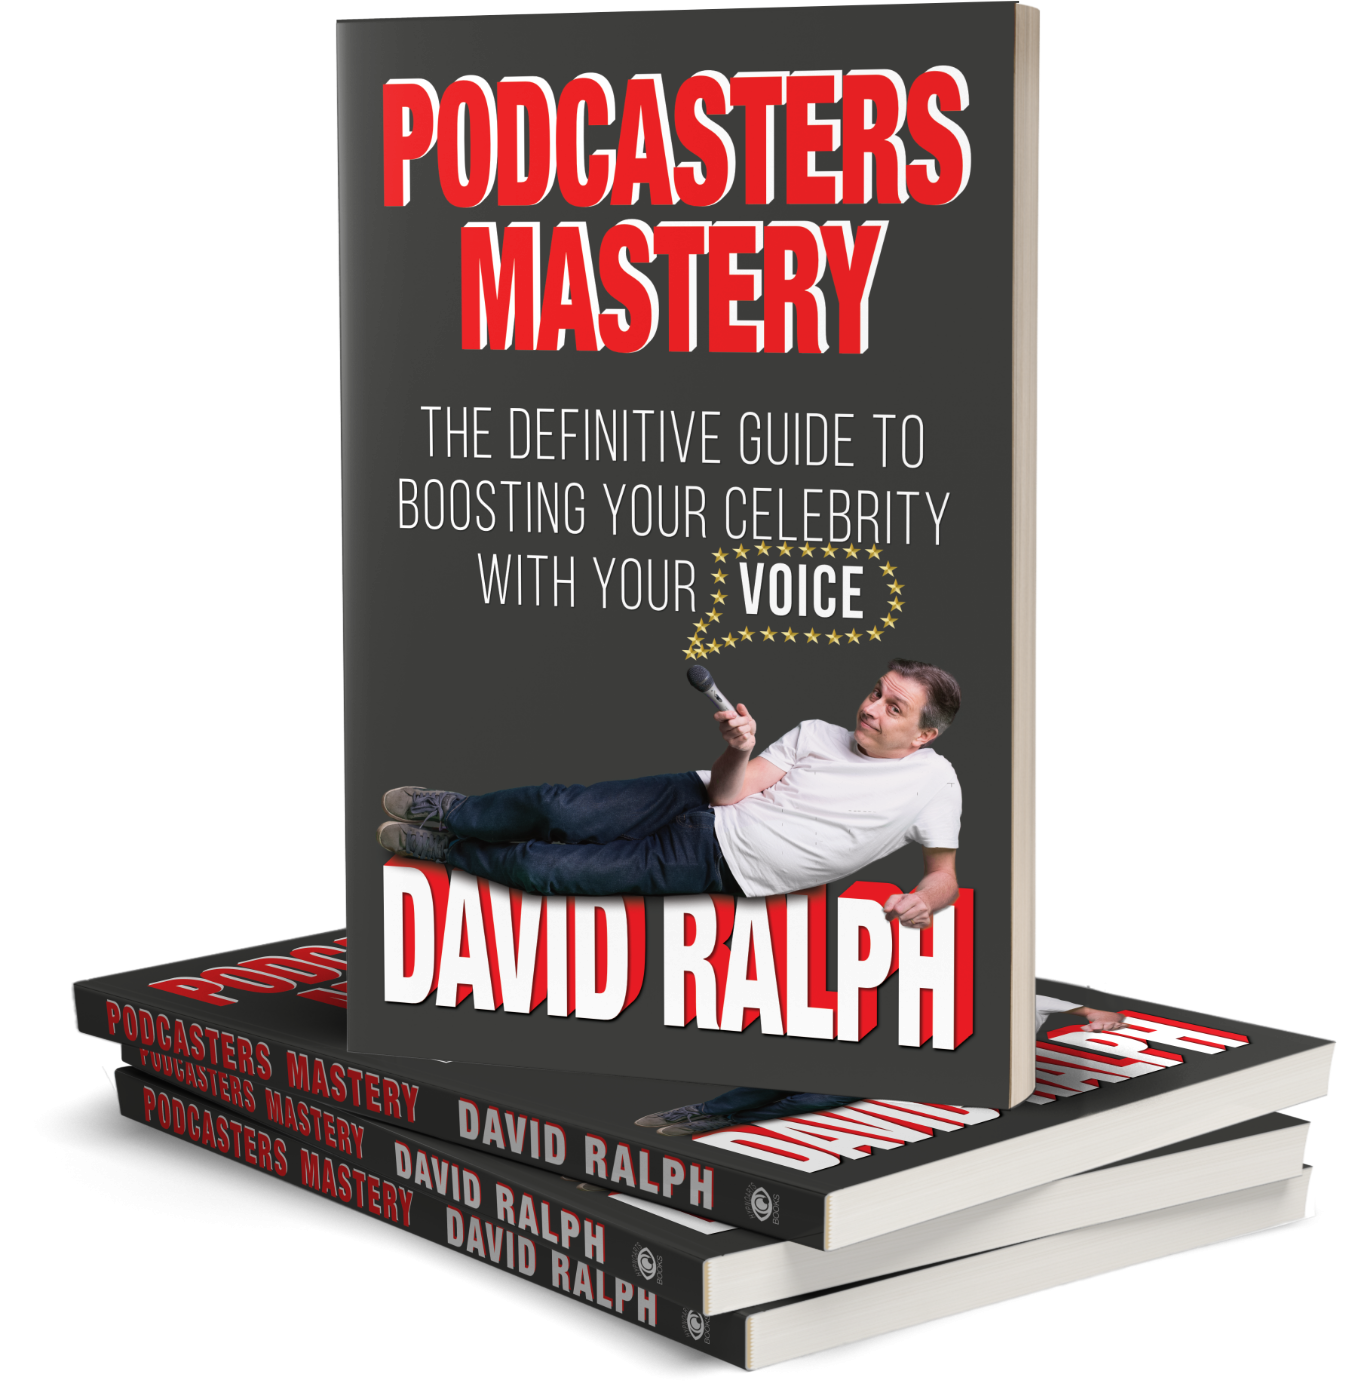 best book on podcasting